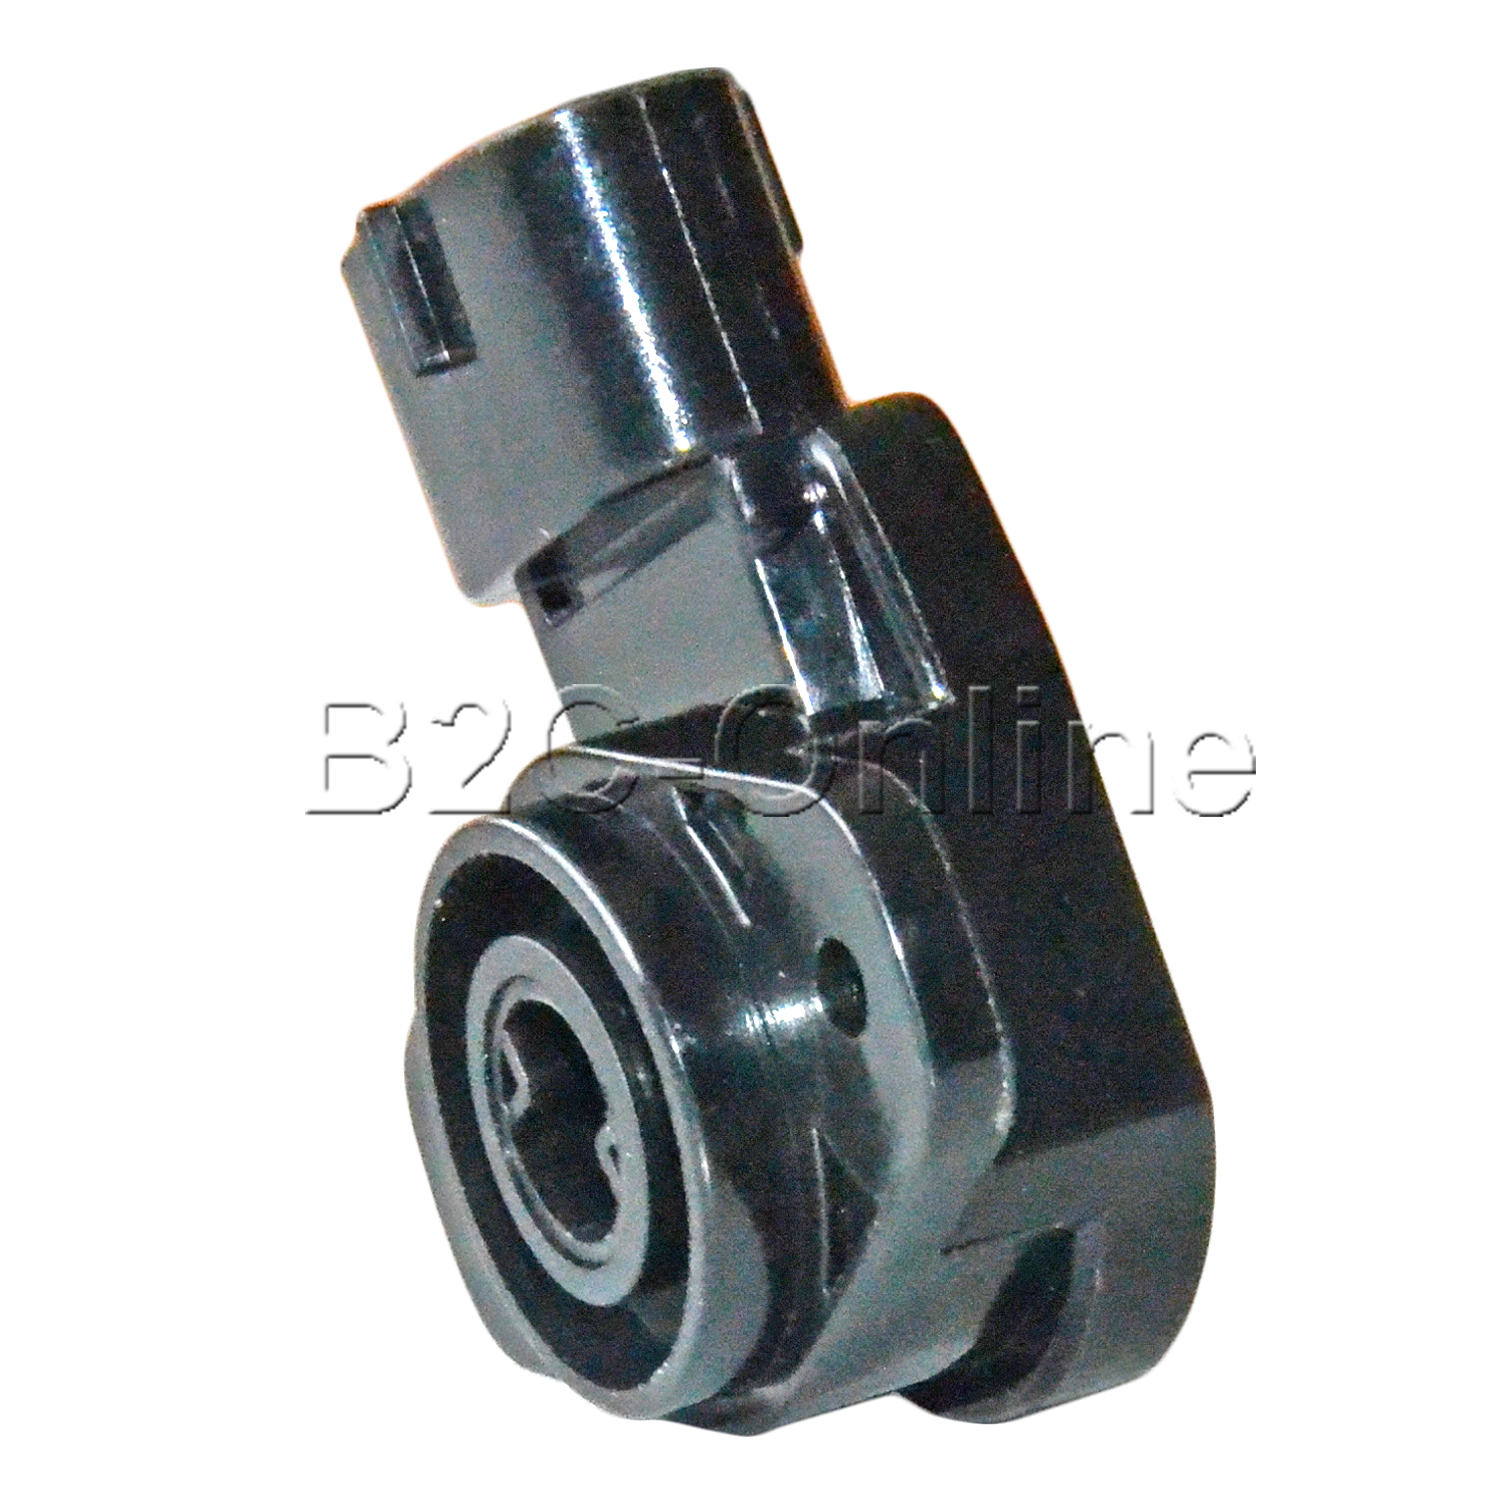 Throttle position sensor 1342065d00 for chevrolet tracker suzuki